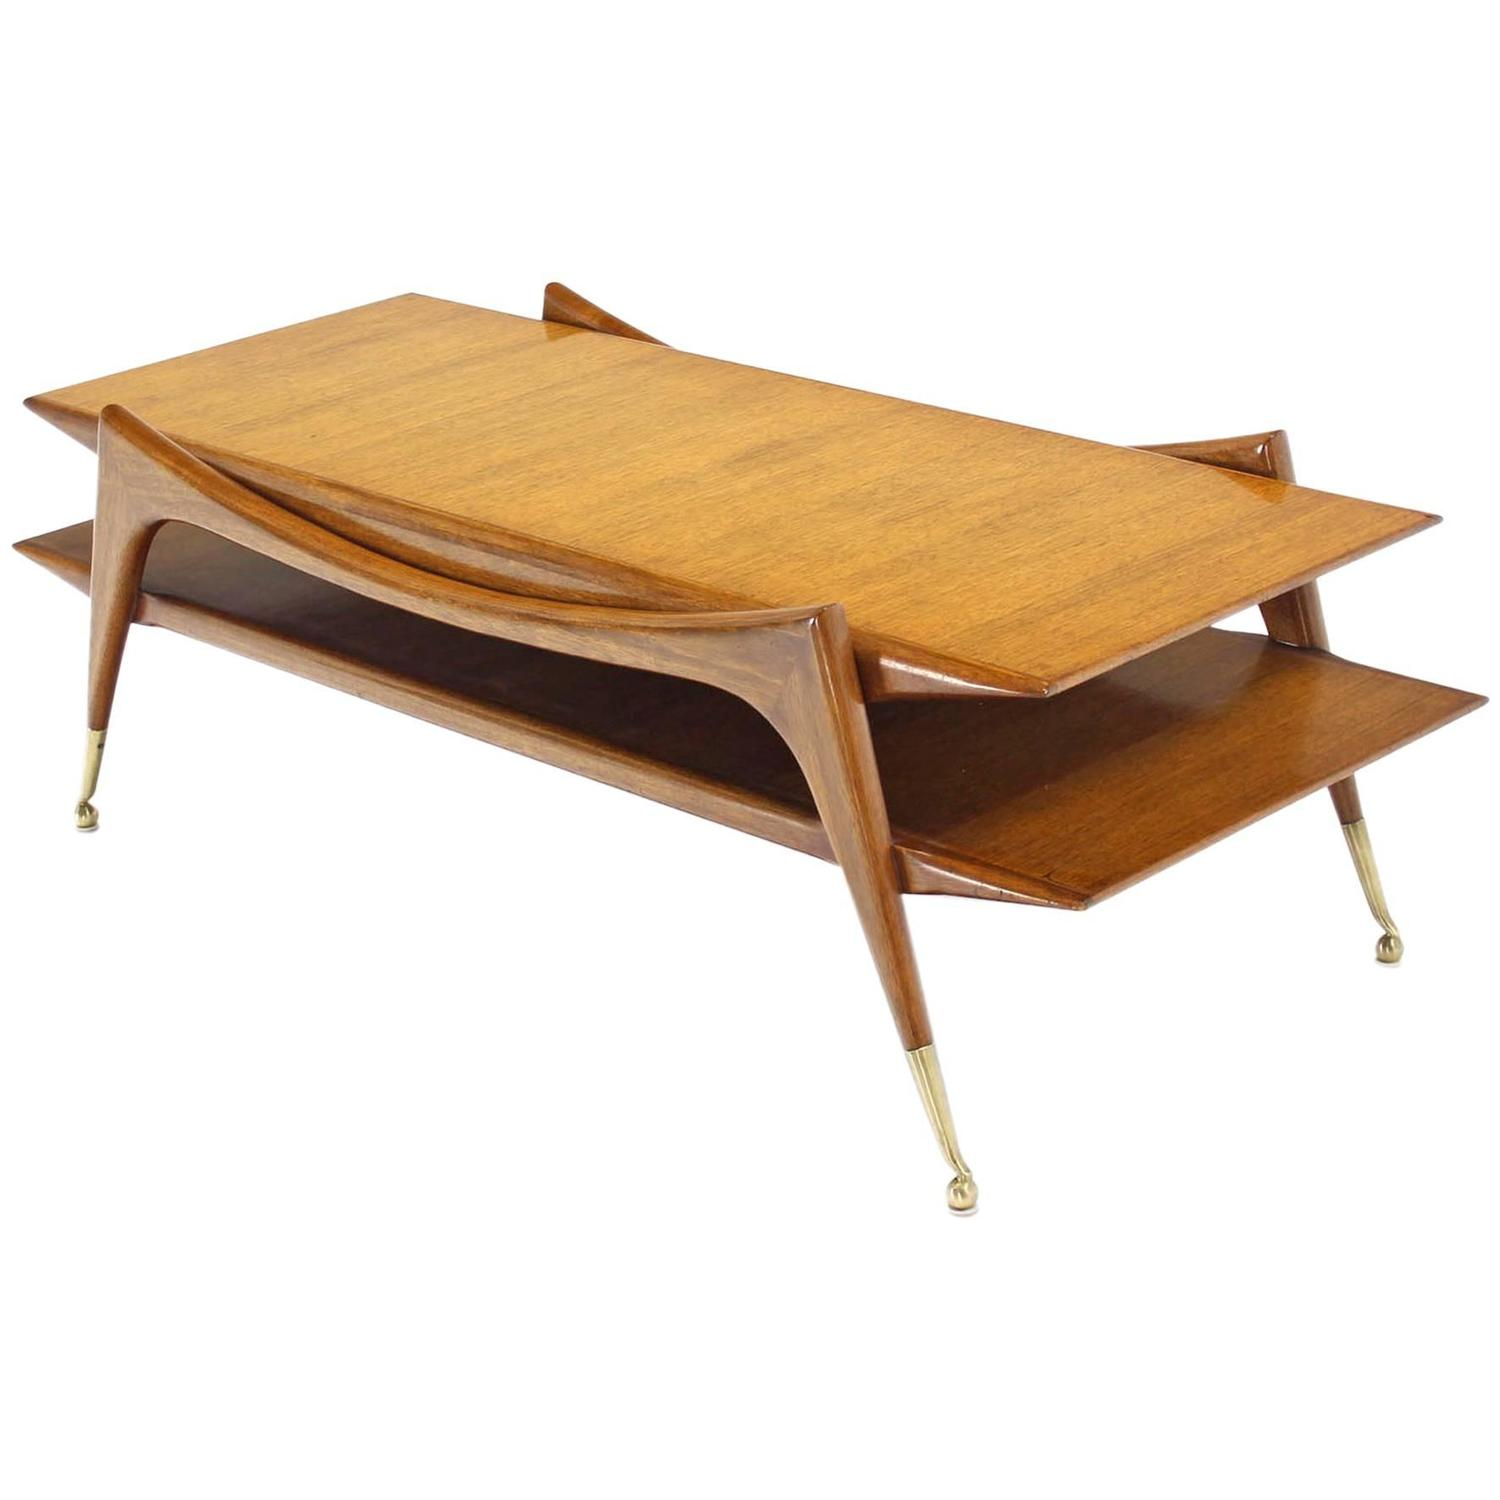 Mid Century Modern Coffee Table With Planter: Sculptural Base Mid-Century Modern Coffee Table On Metal